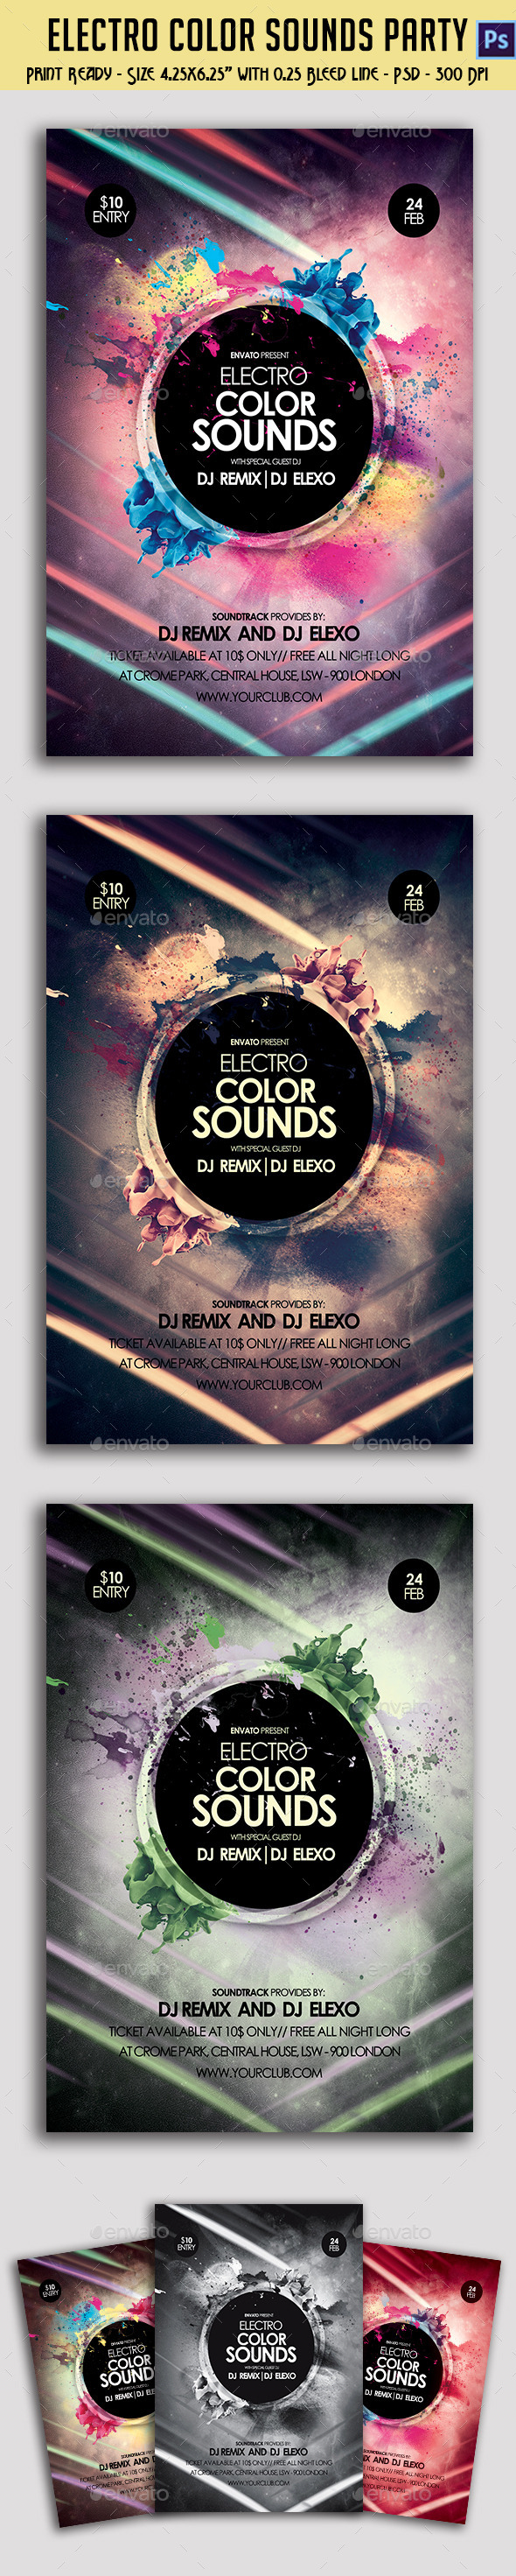 GraphicRiver Electro Color Sounds Party Flyer 10111719